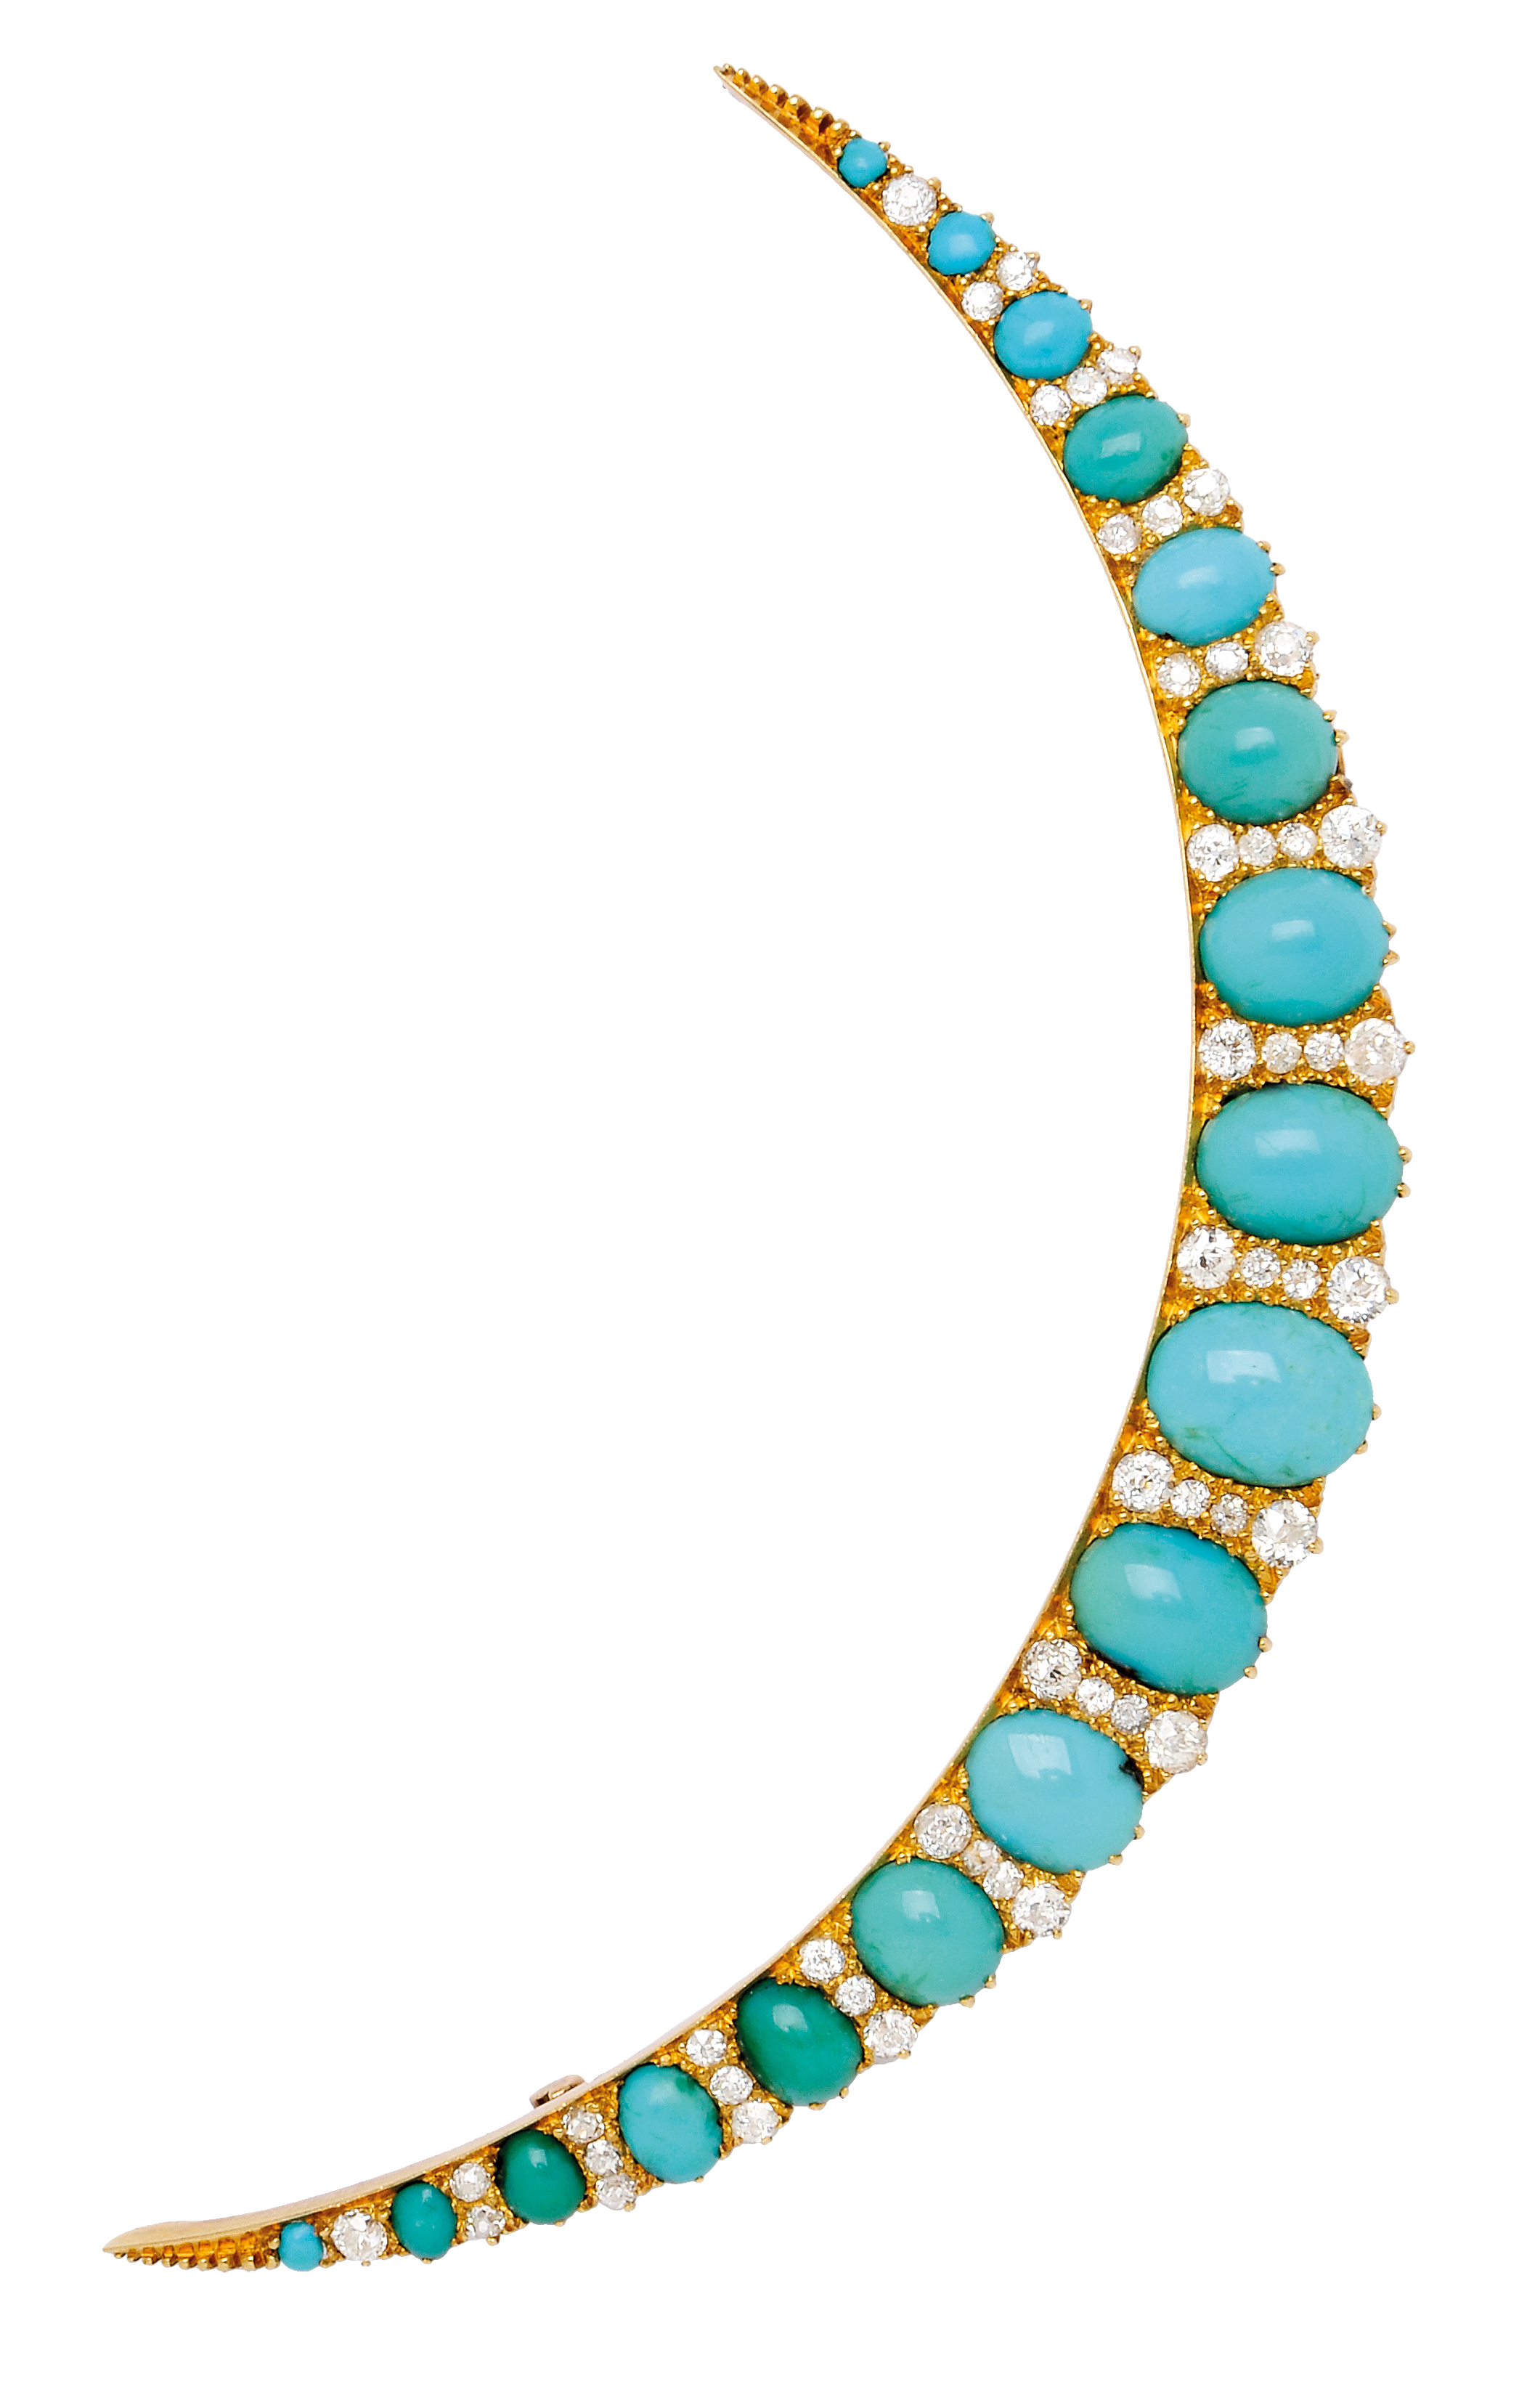 Antique Turquoise and Diamond Crescent Brooch: Lot 173, Spring 2014 sale